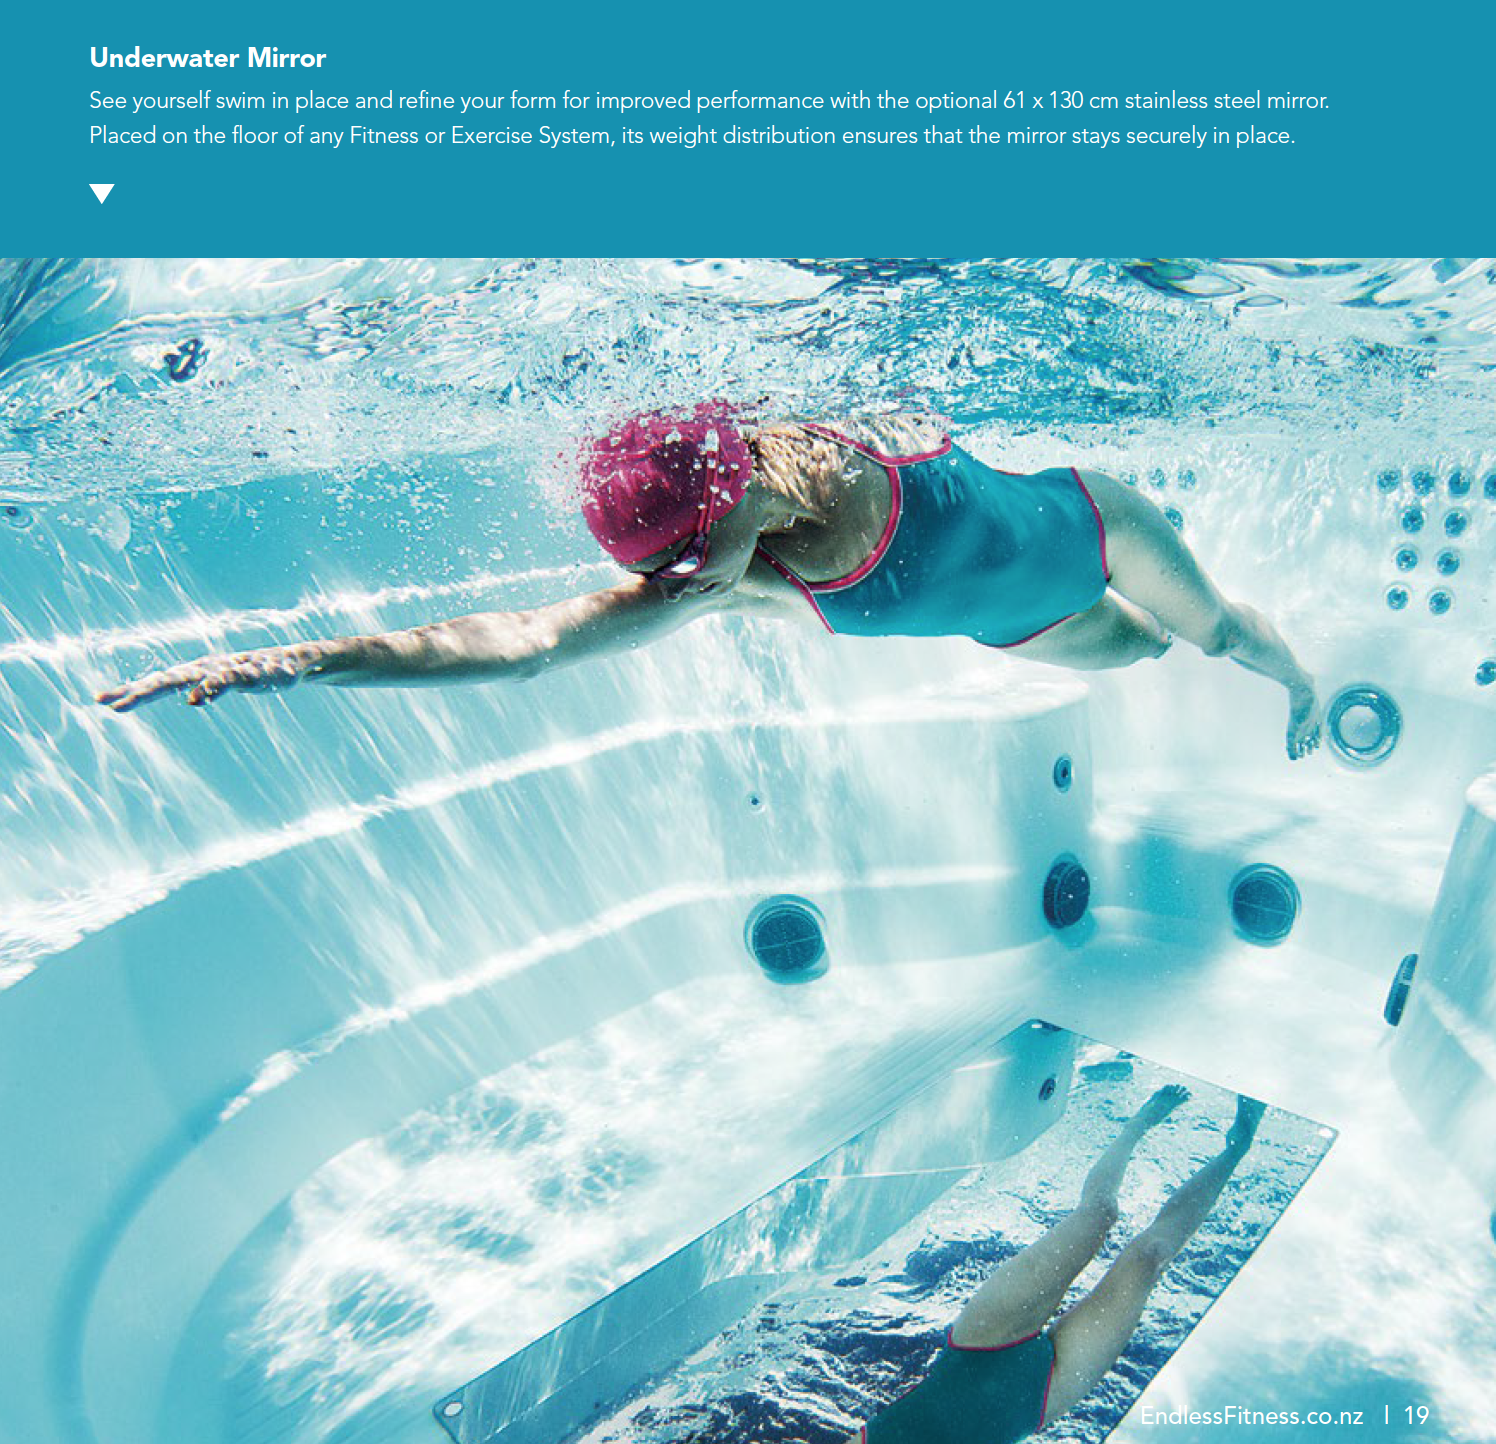 swim-spa-nz-endless-pools-2020-04-18-at-9.55.06-am-6.png